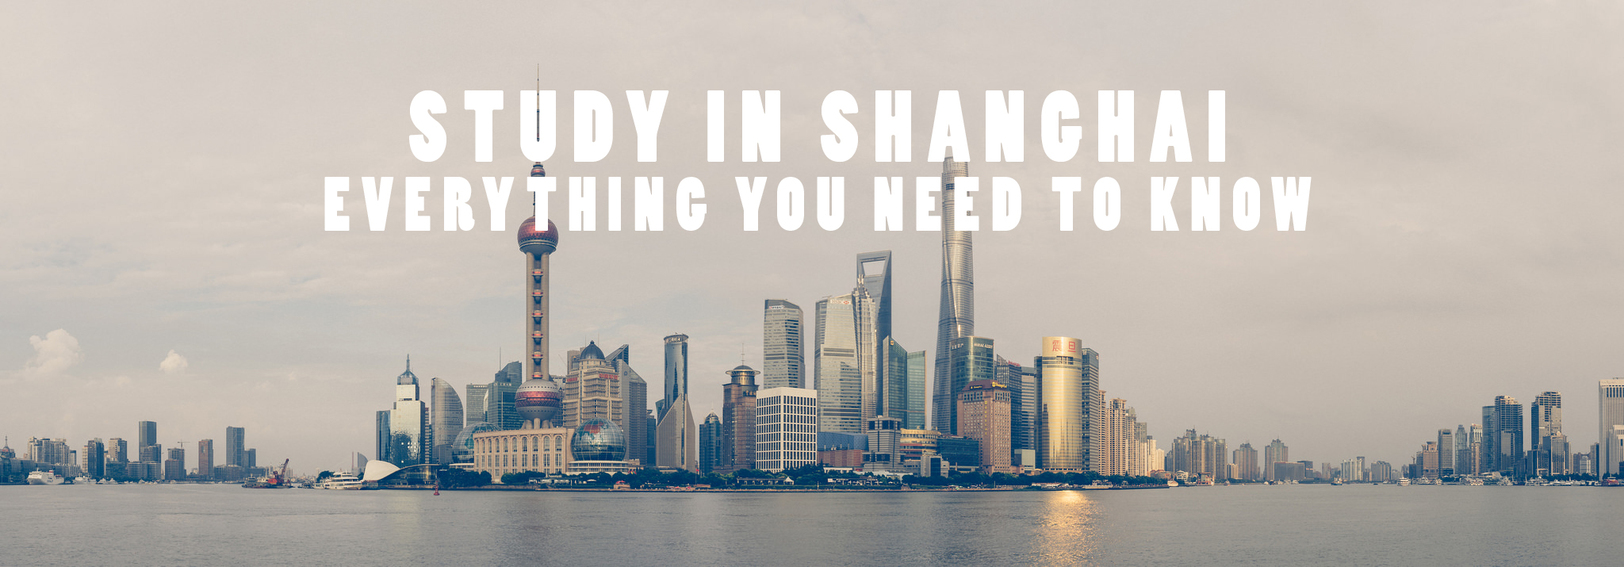 [INFOGRAPHIC] Study in Shanghai: everything you need to know